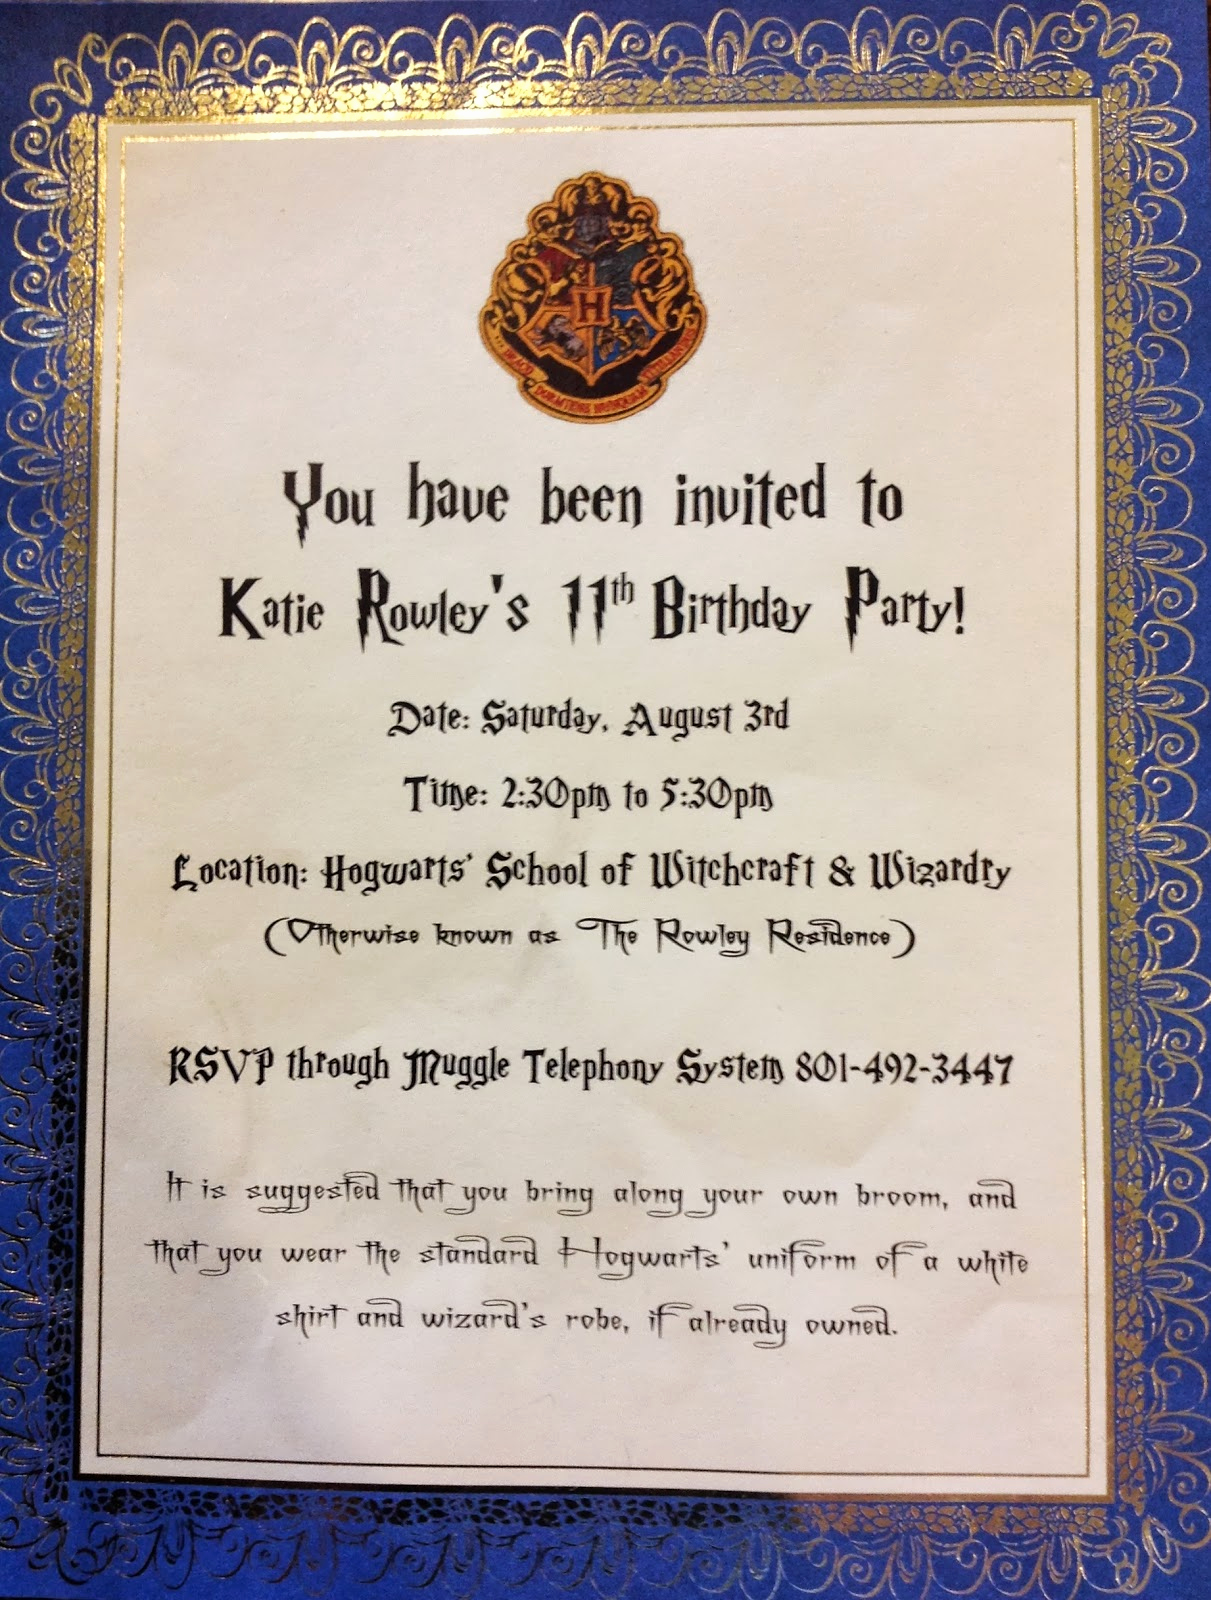 Harry Potter Party Invitation Template Lovely Puddle Wonderful Learning Harry Potter Birthday Party